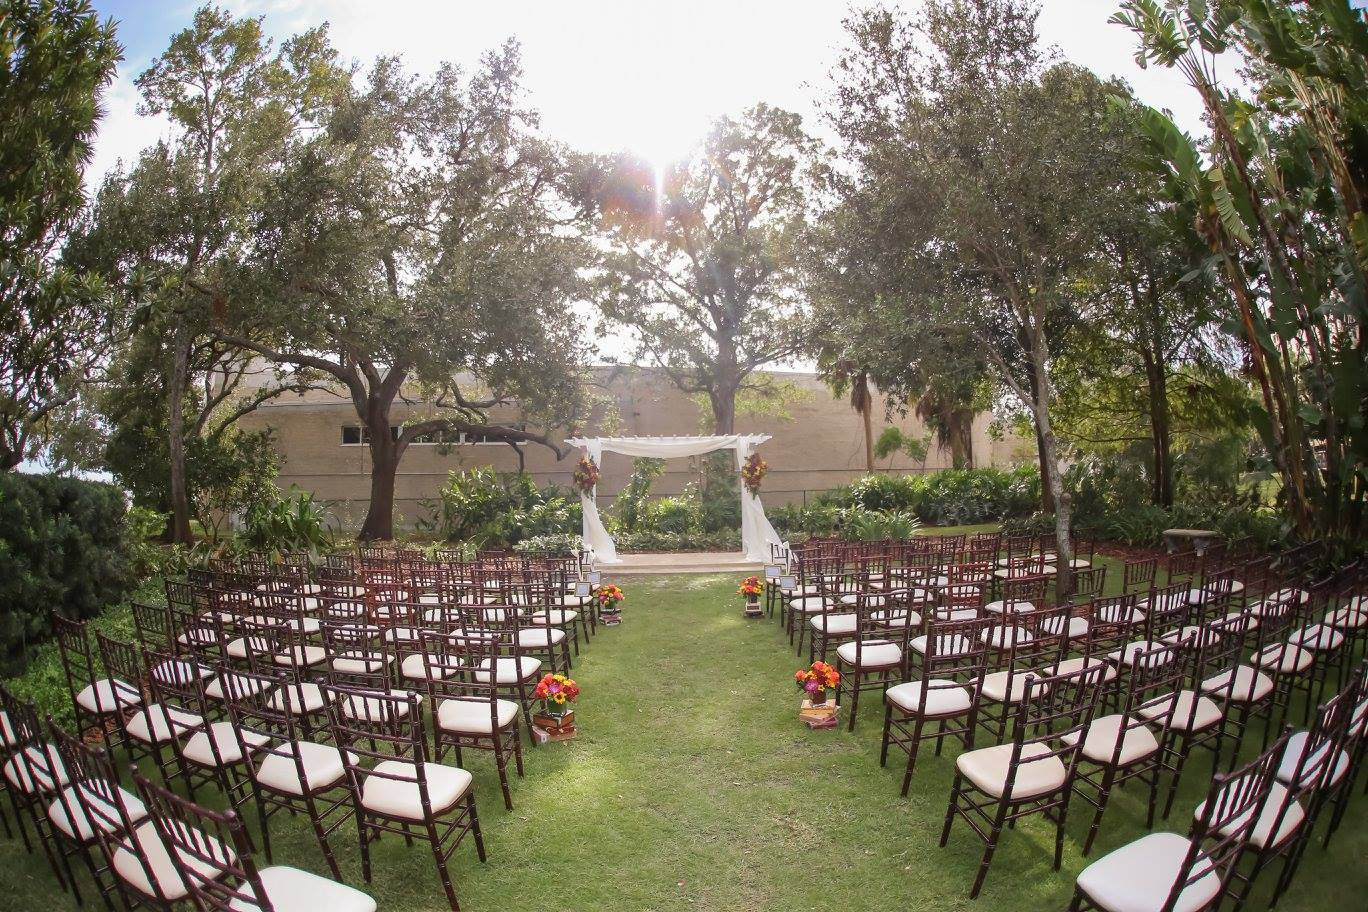 The Tampa Garden Club's lush garden space created the perfect ceremony backdrop as the two exchanged vows led by a close friend from the groom's residency program.